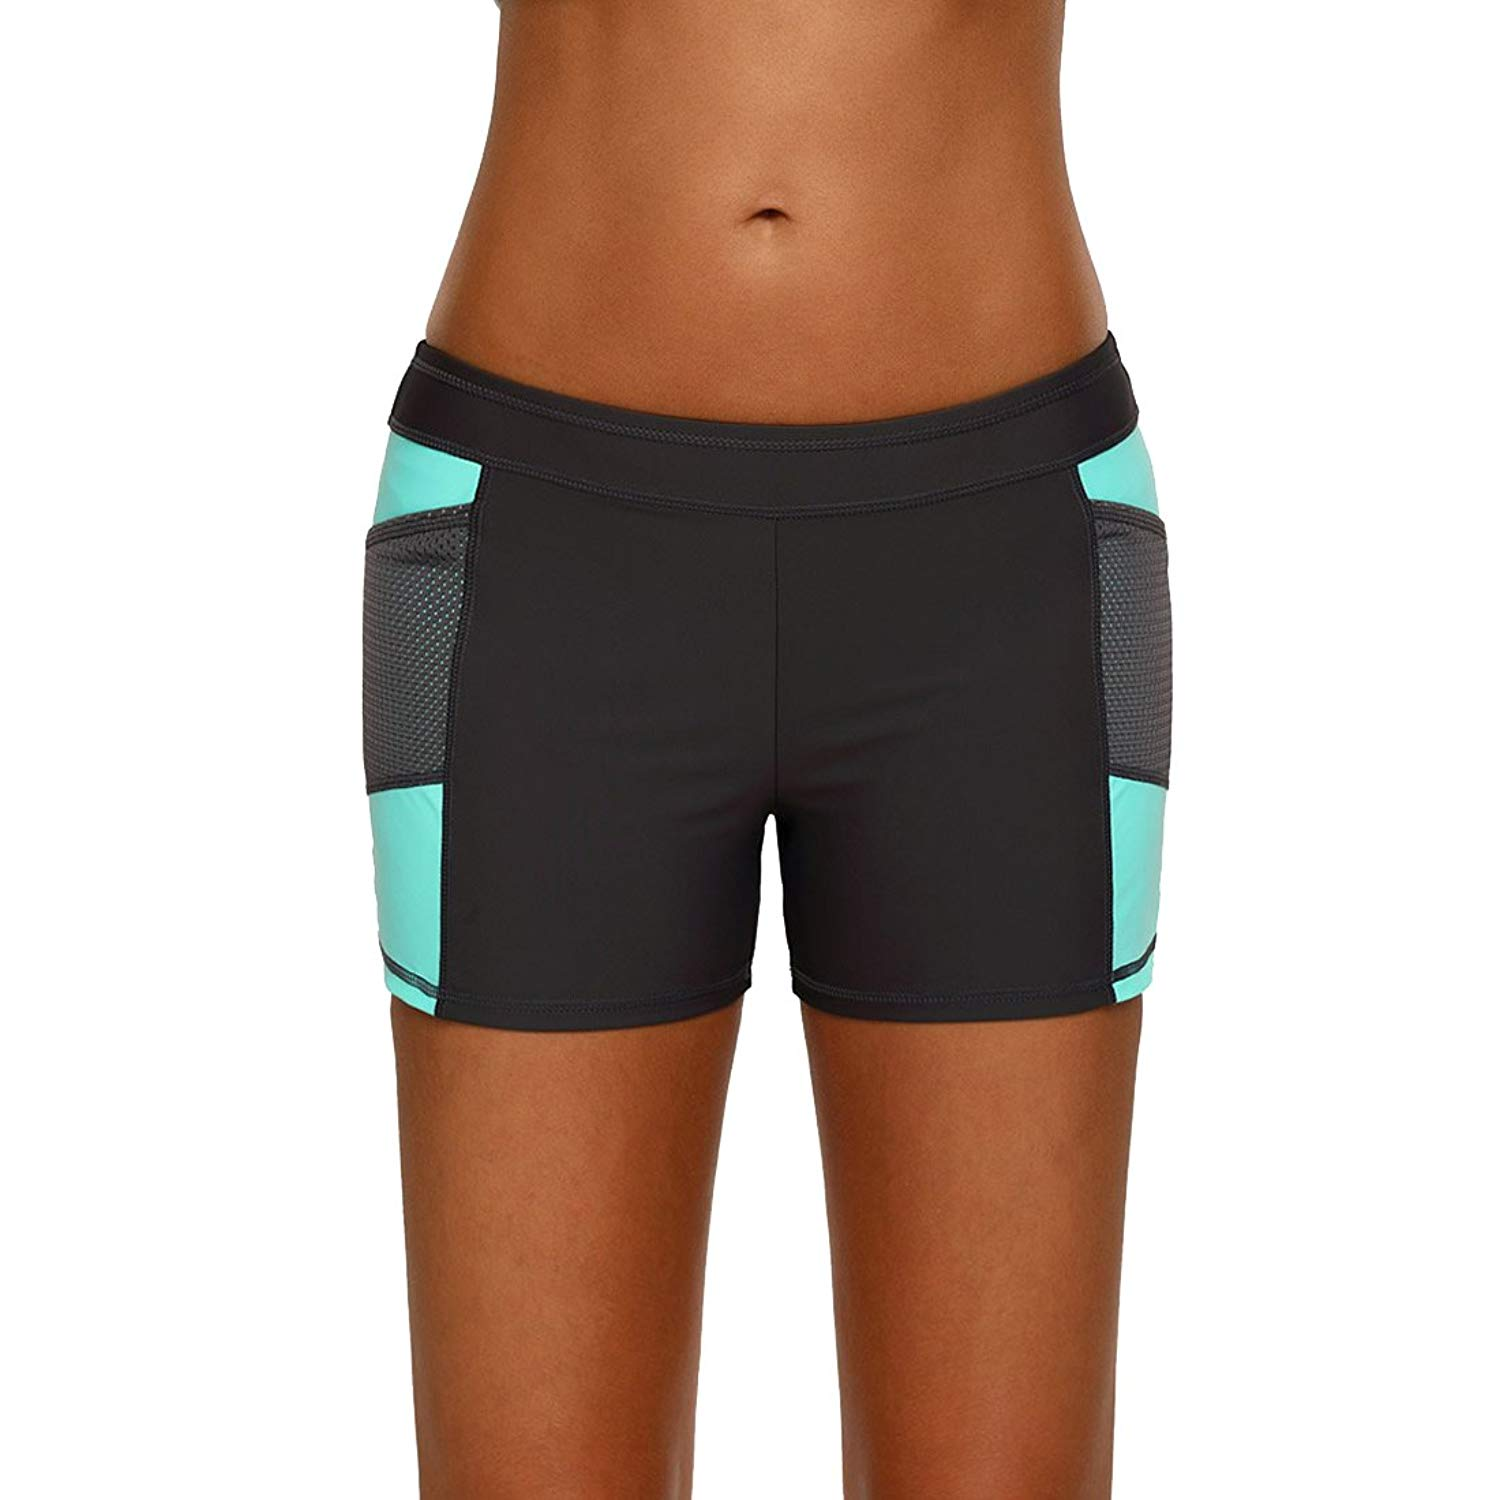 38370d3bb8 Cheap Ladies Swim Shorts And Tops, find Ladies Swim Shorts And Tops ...